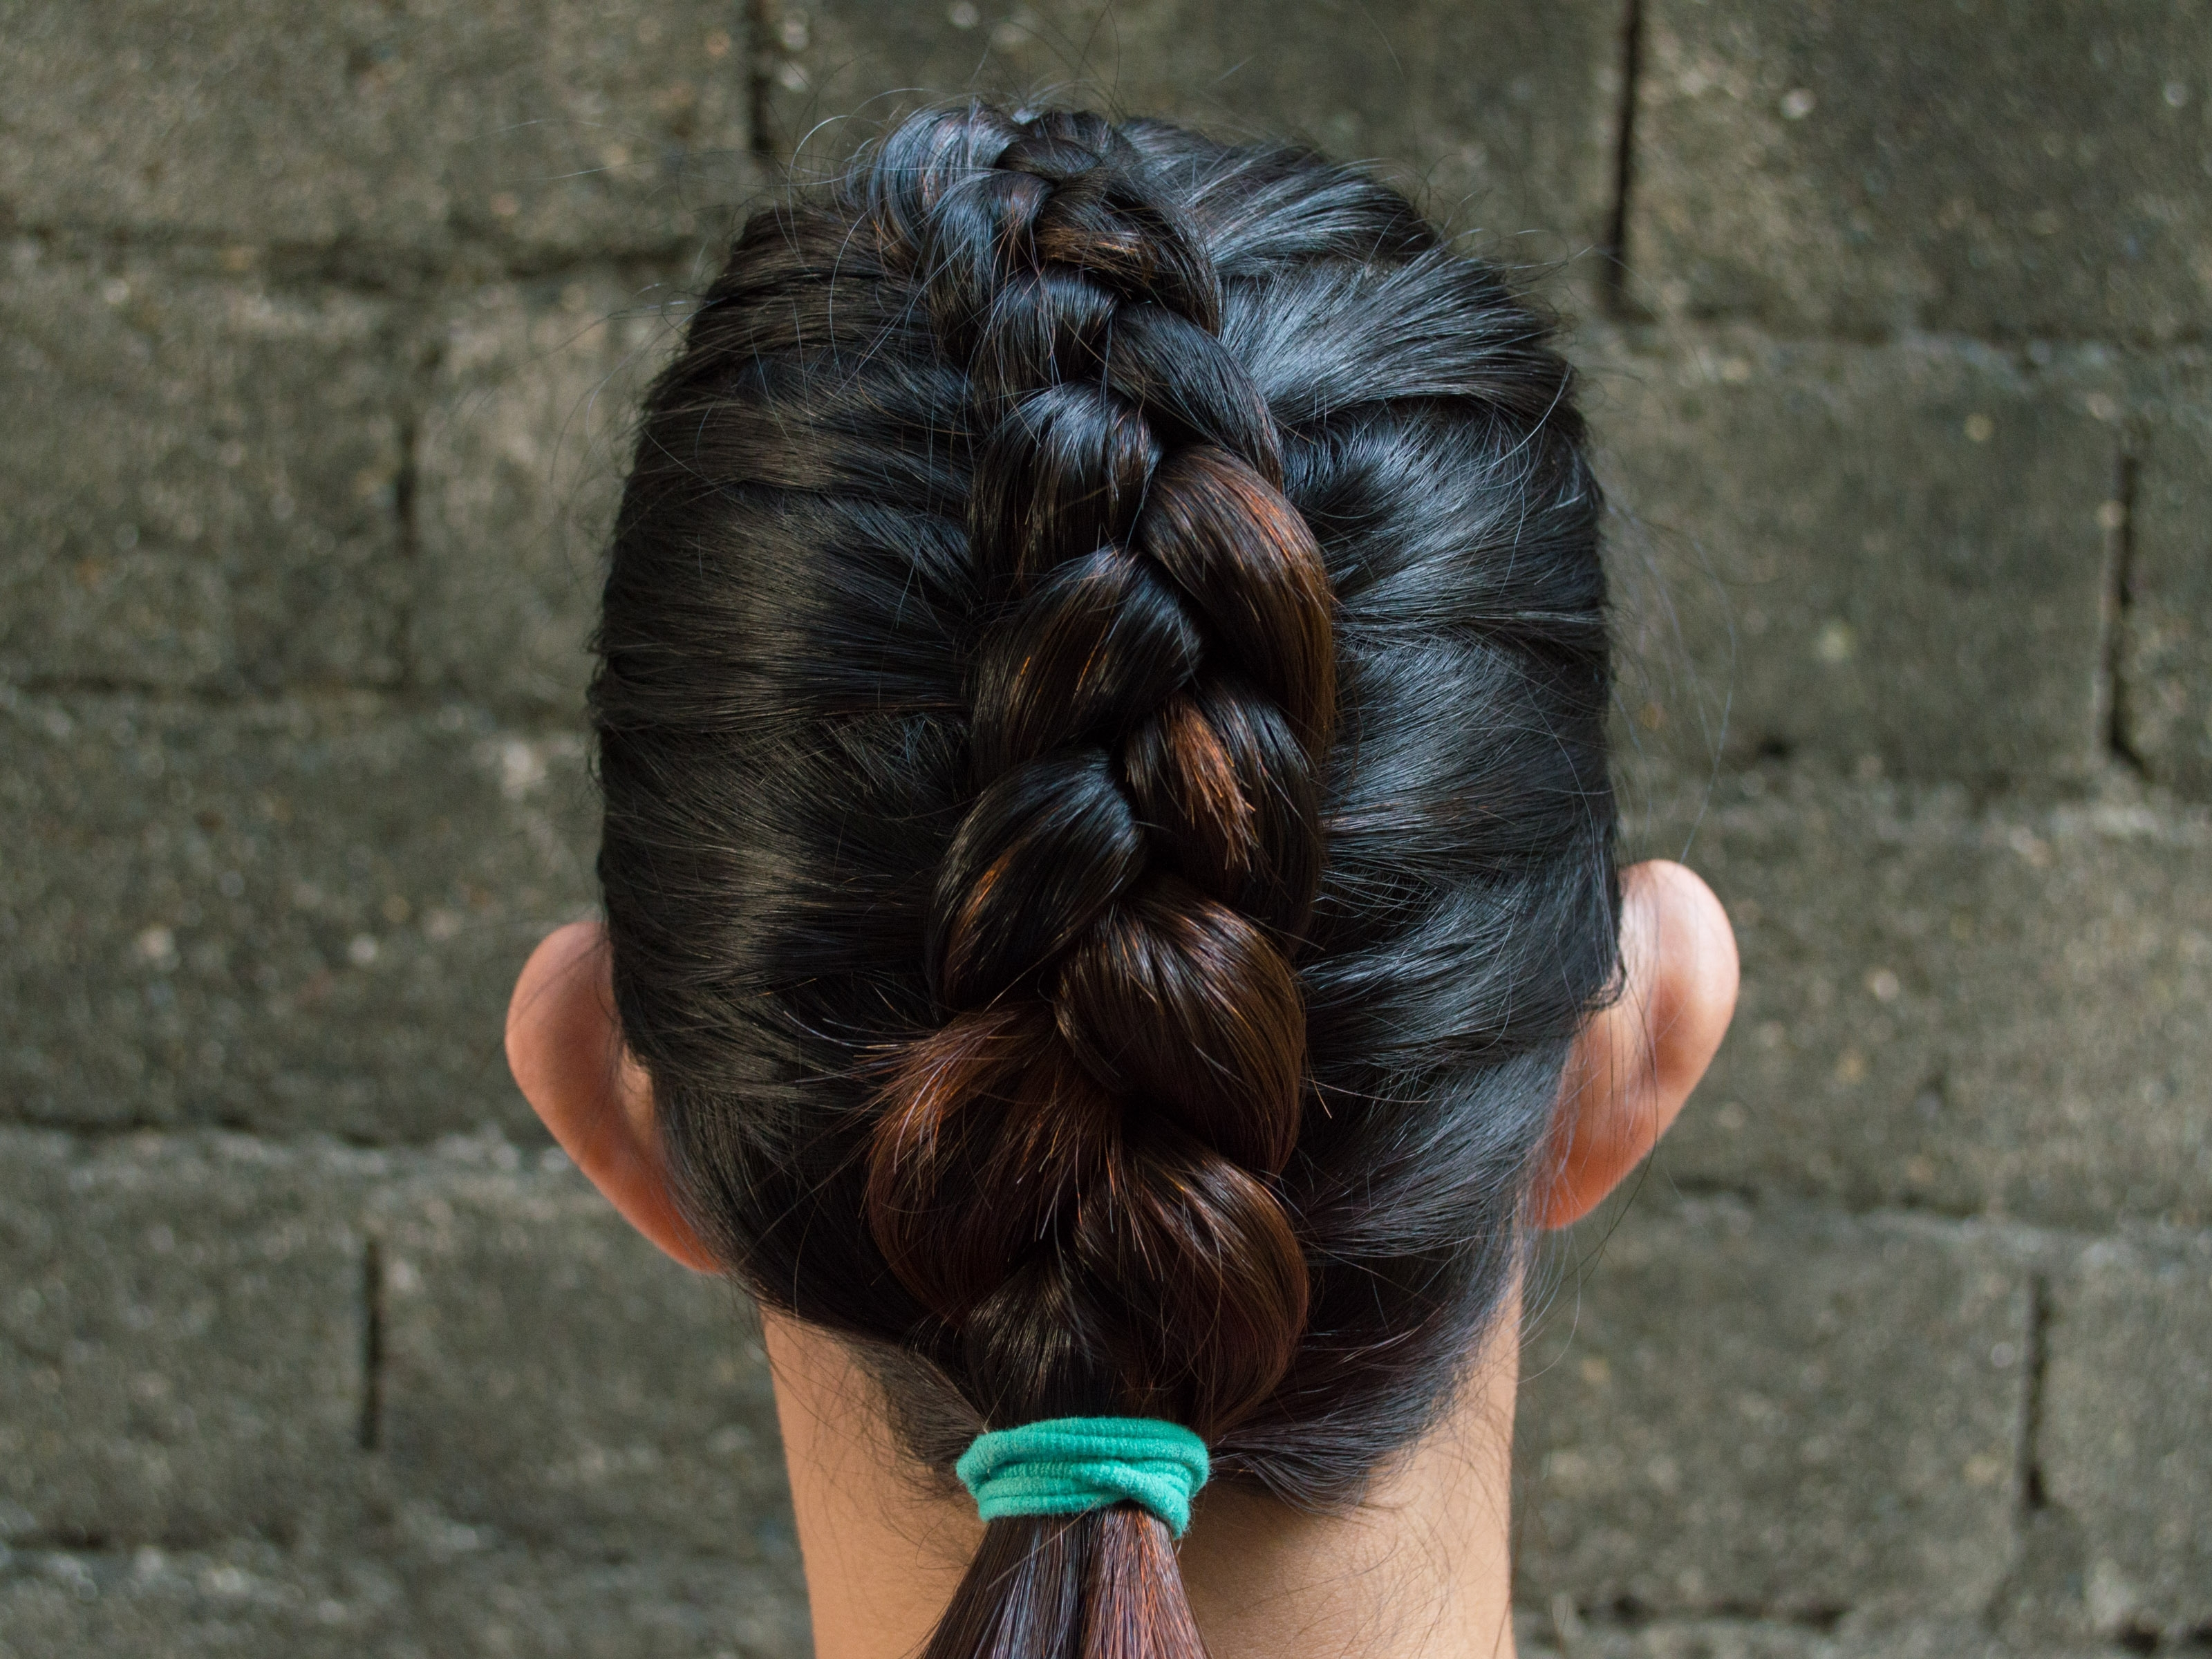 Well Liked Two Classic Braids Hairstyles In How To Do A Reverse French Braid: 6 Steps (with Pictures) (View 5 of 15)